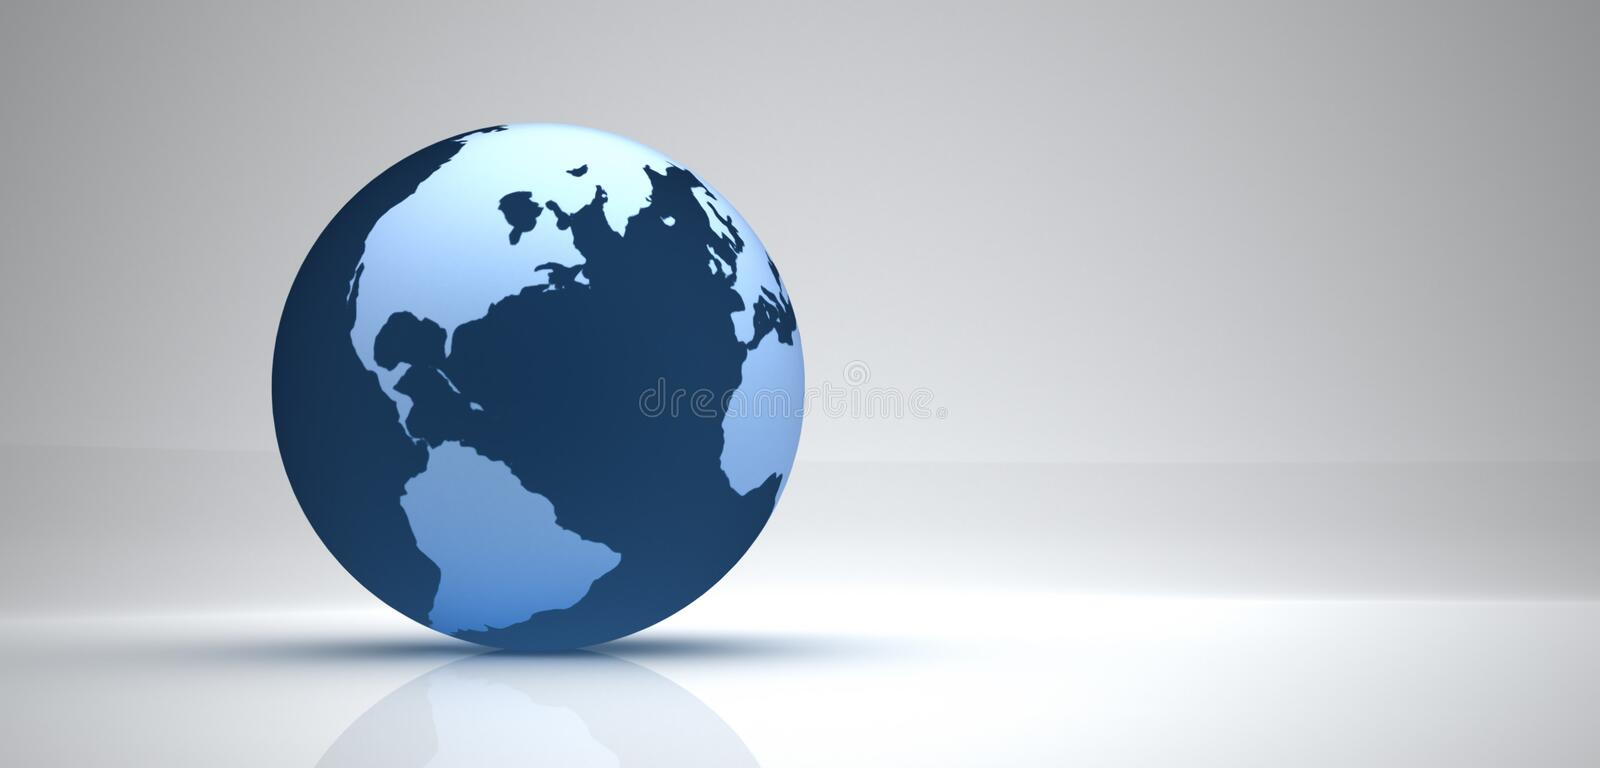 Earth. 3d earth illustration with white background